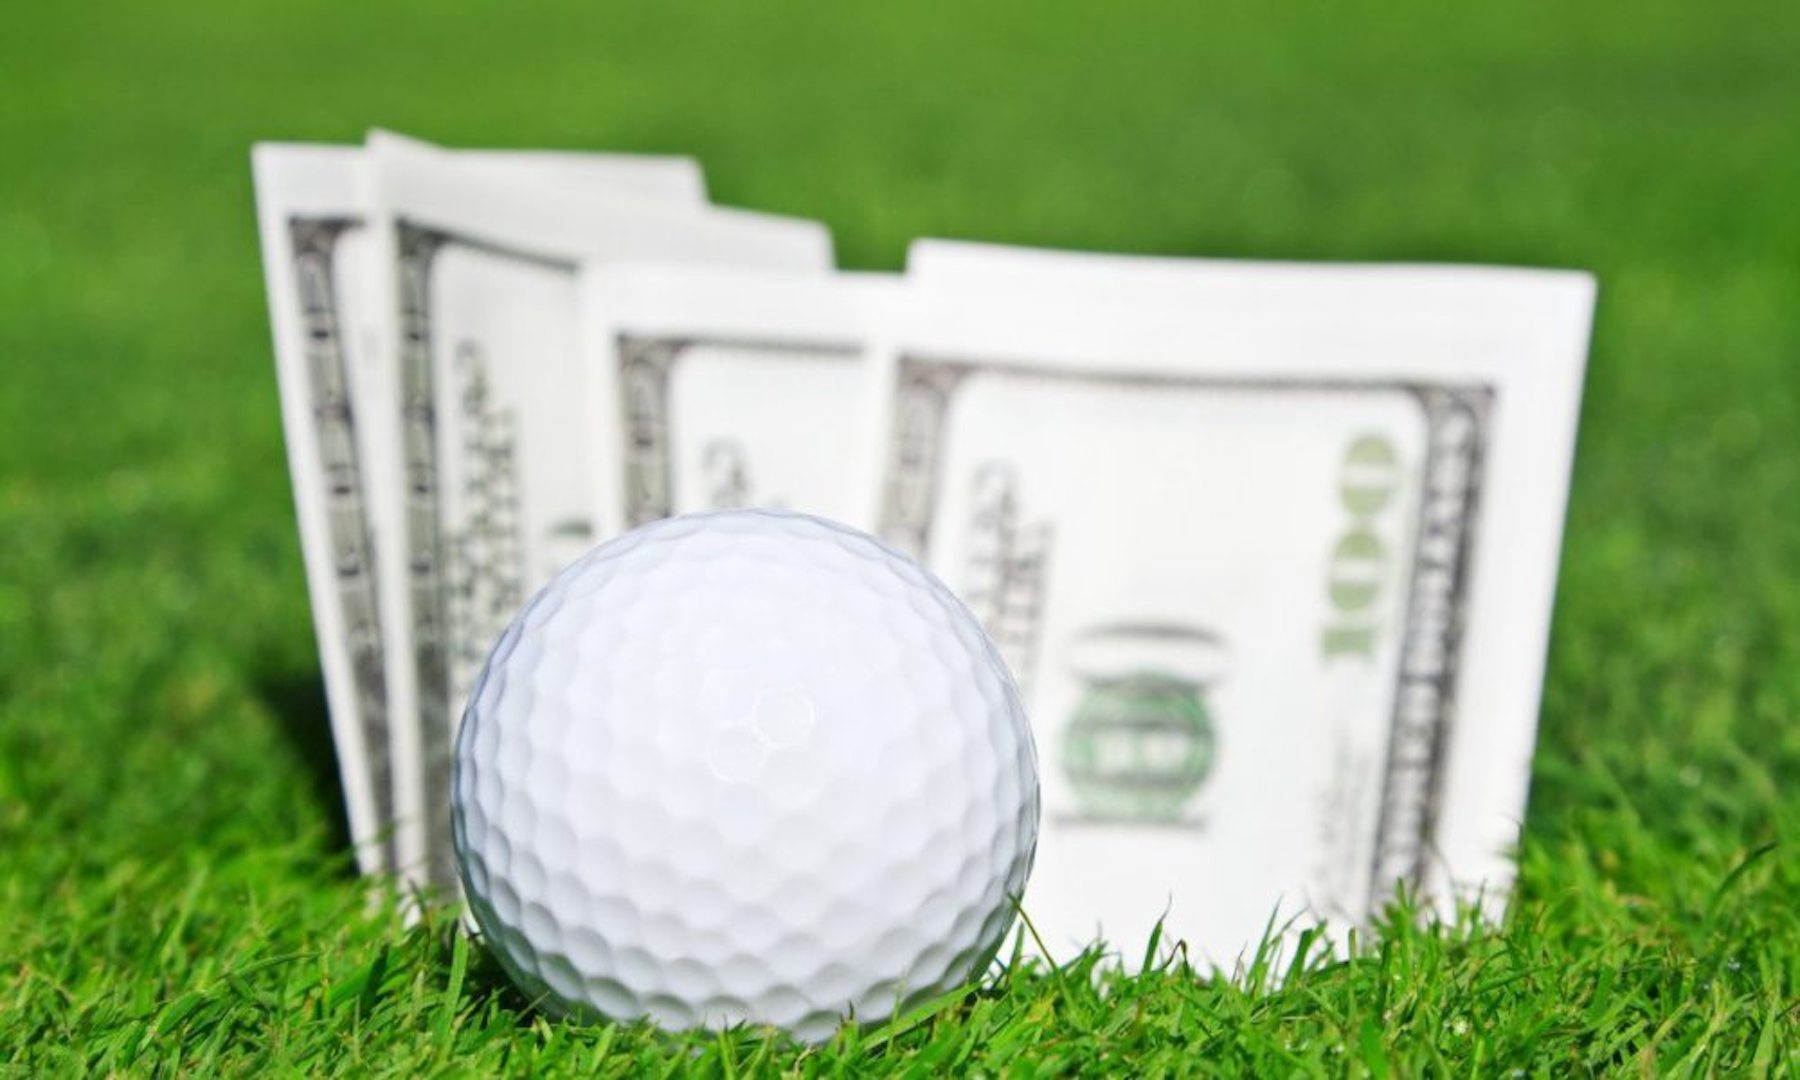 How to bet on golf tournaments raleigh investment firm bets big on nc real estate